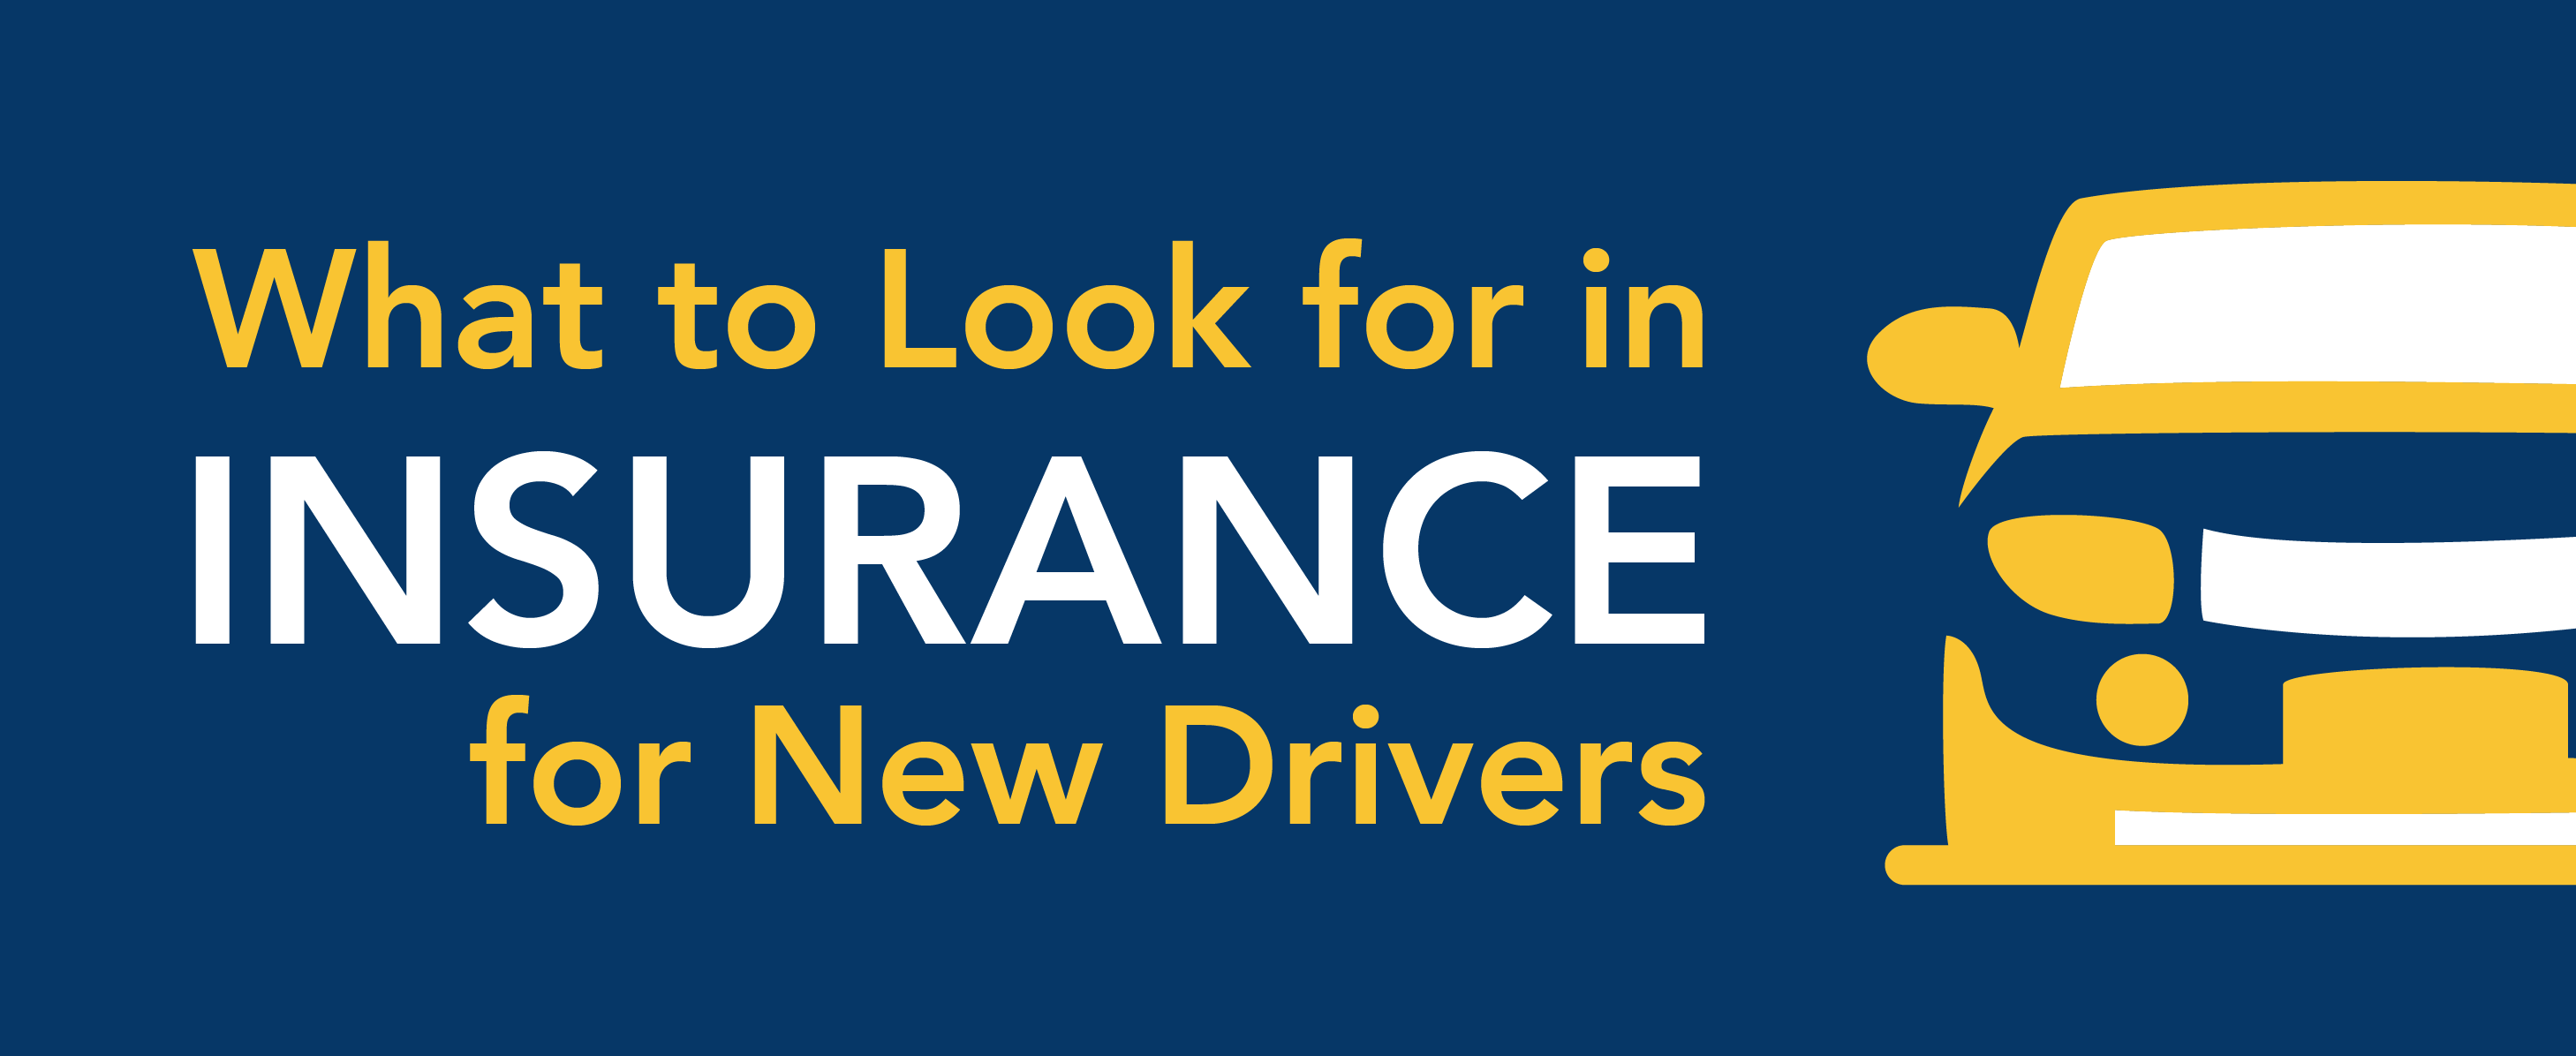 What to look for in insurance for new drivers.